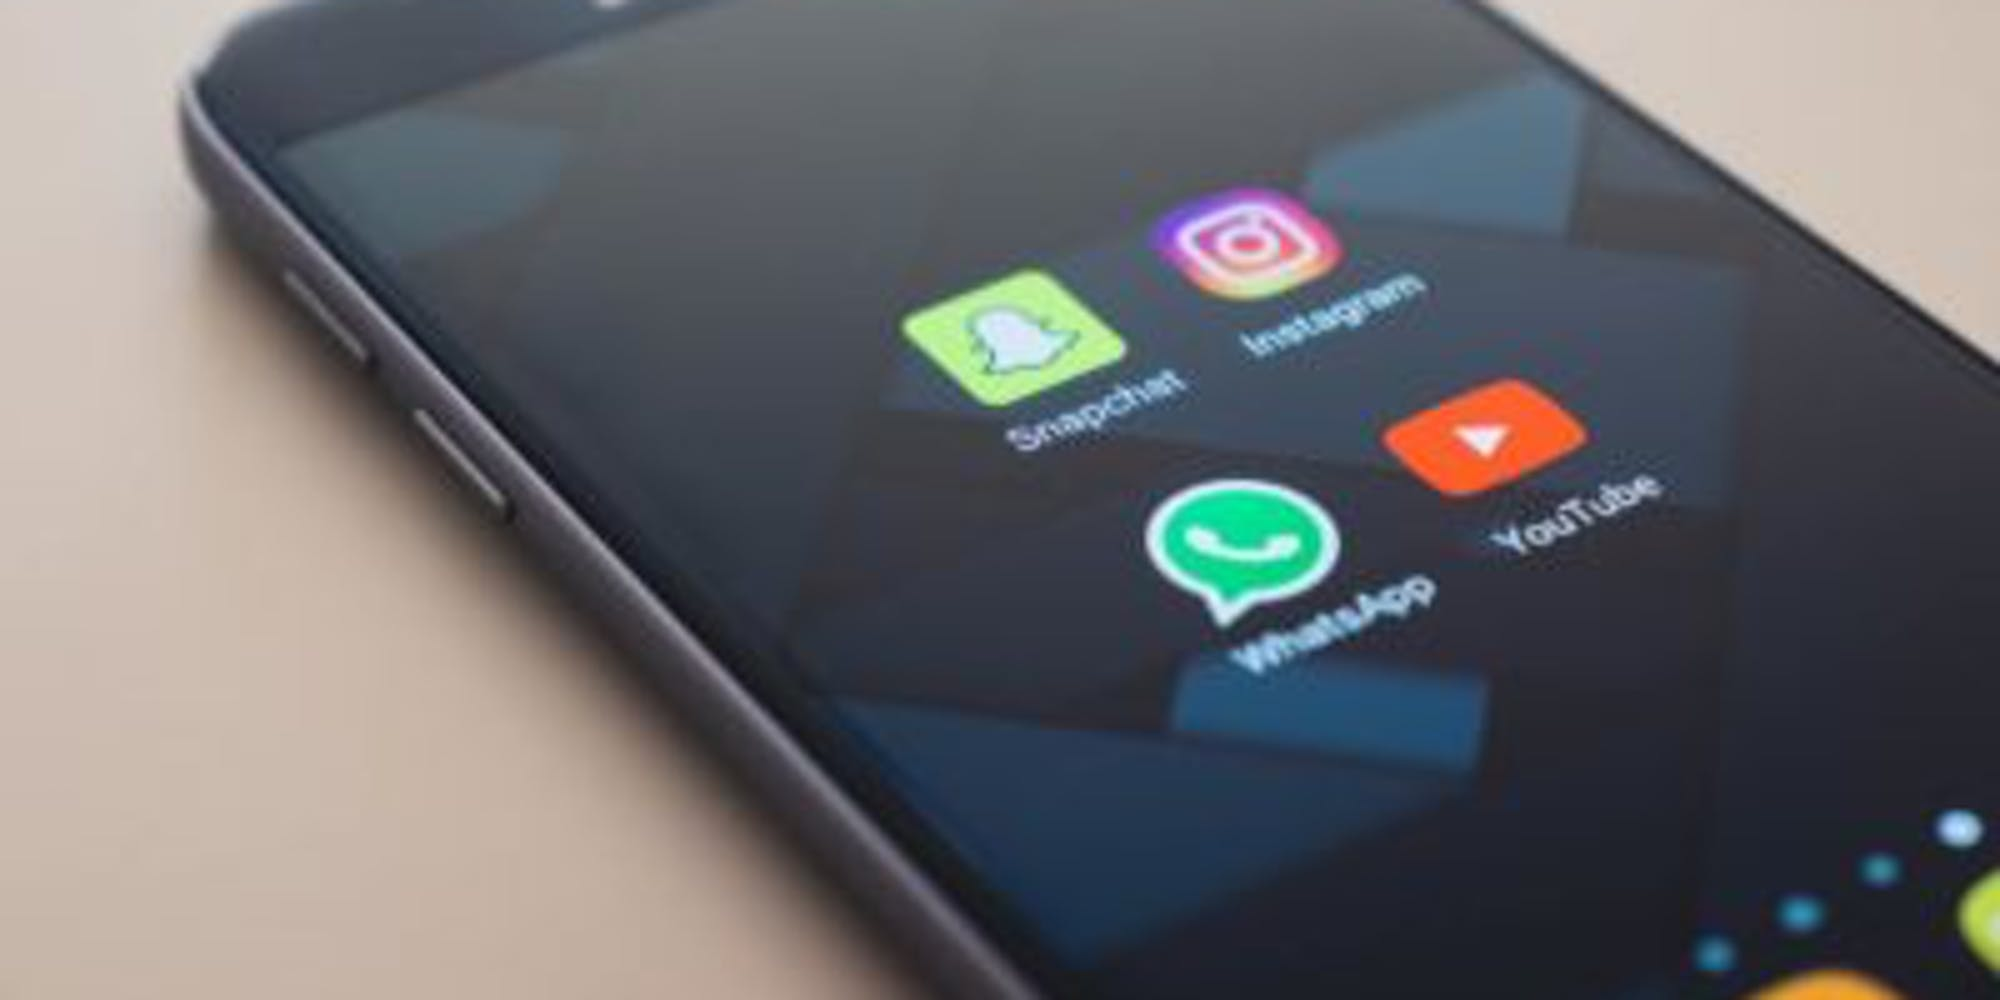 A phone opening up to a folder with social media apps Snapchat, Instagram, Whatsapp and Youtube